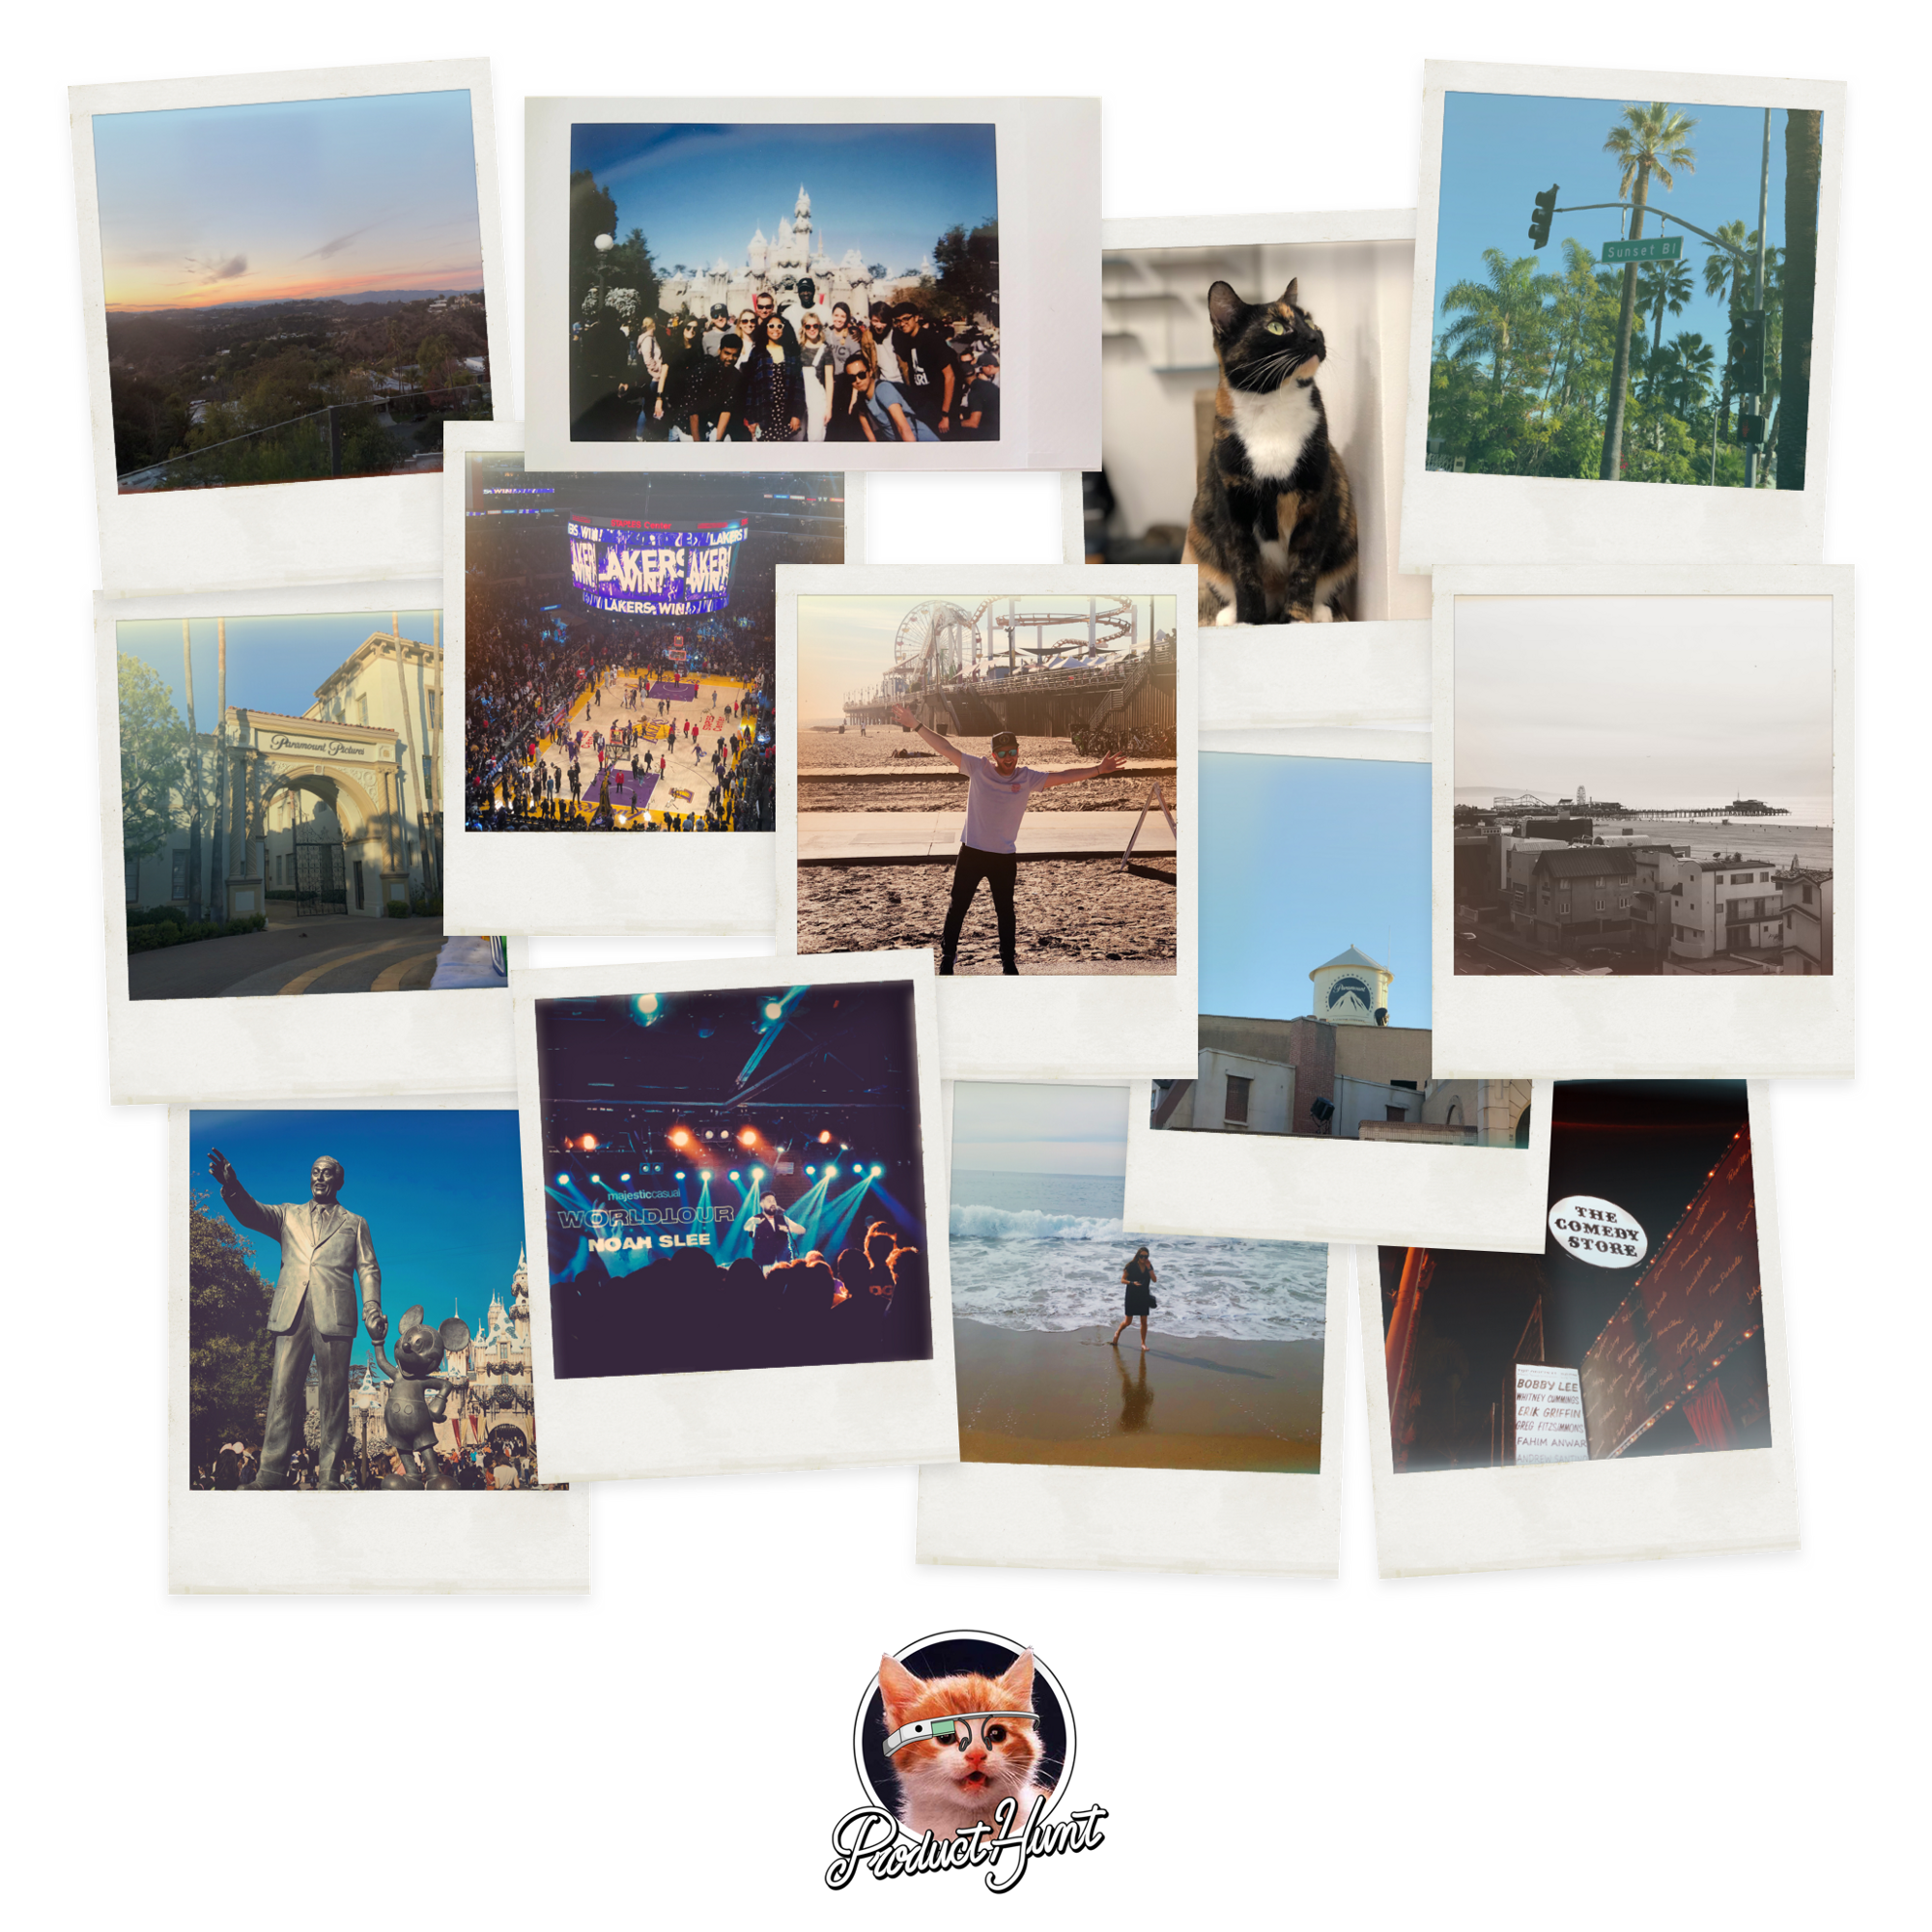 Product Hunt IRL—My first week